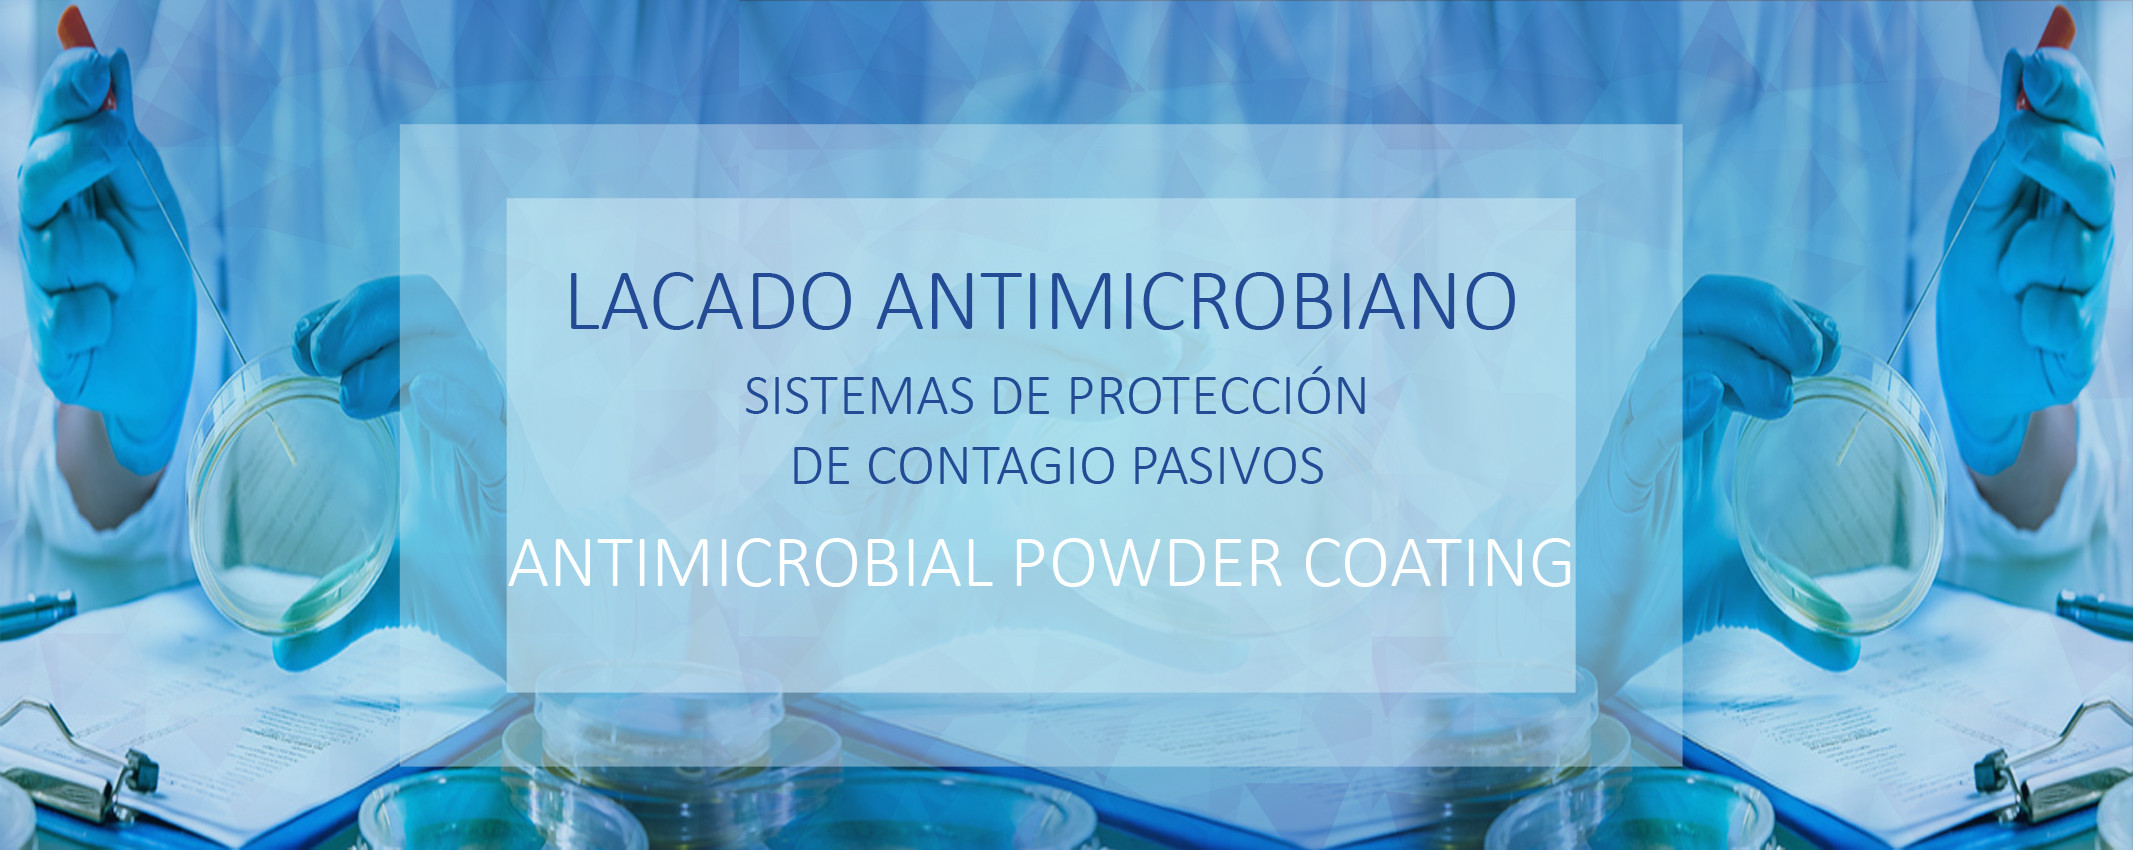 Antimicrobiano